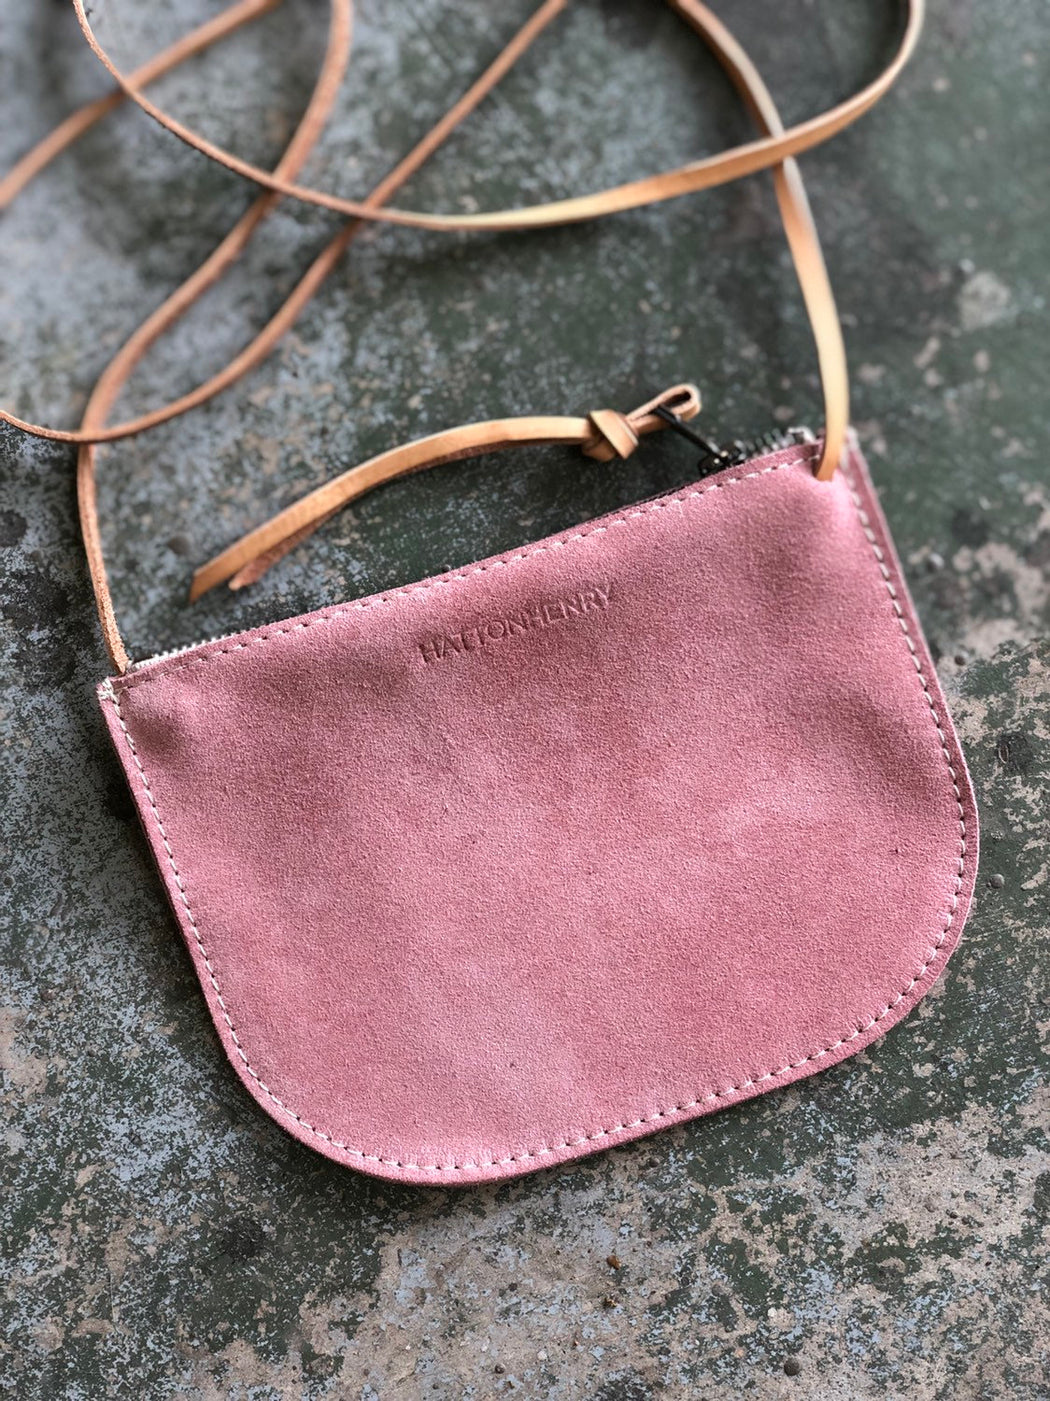 LIMITED EDITION Luna Crossbody Rose Pink Suede • Minimal Leather Bag